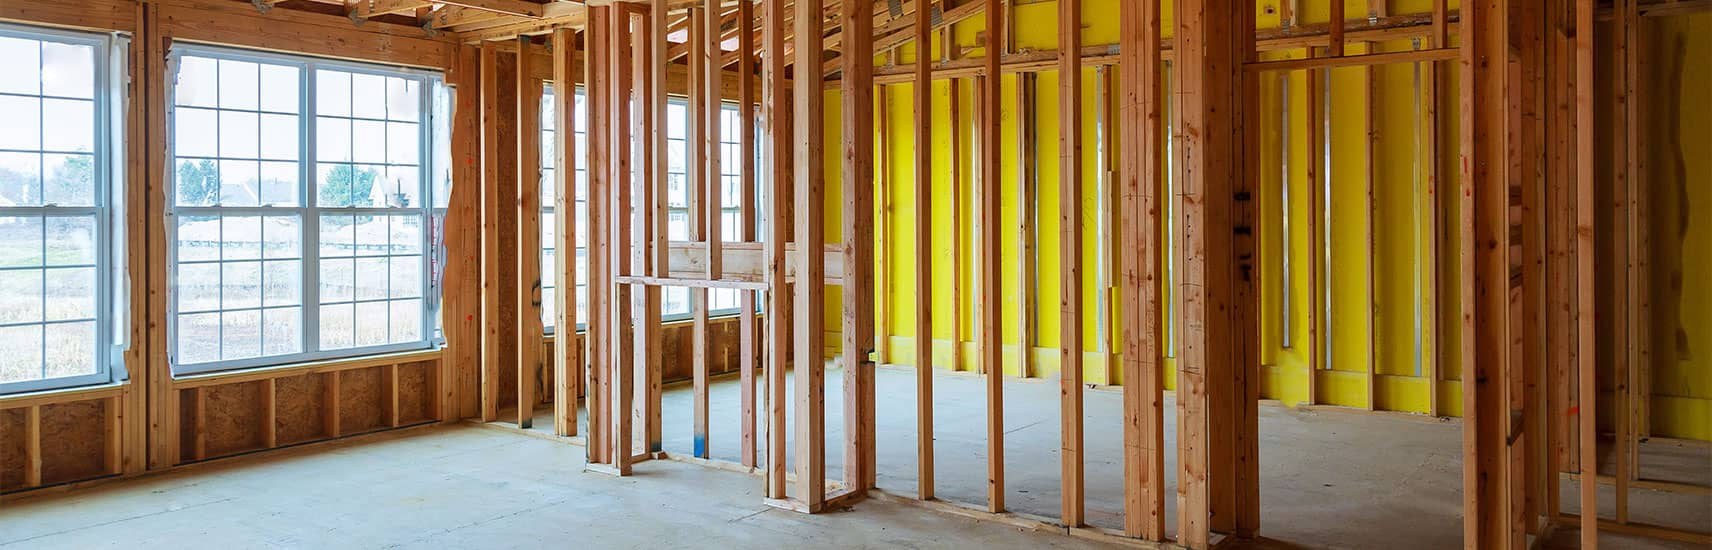 Upper Saddle River General Contractor, Home Remodeling Contractor and Kitchen Remodeling Contractor